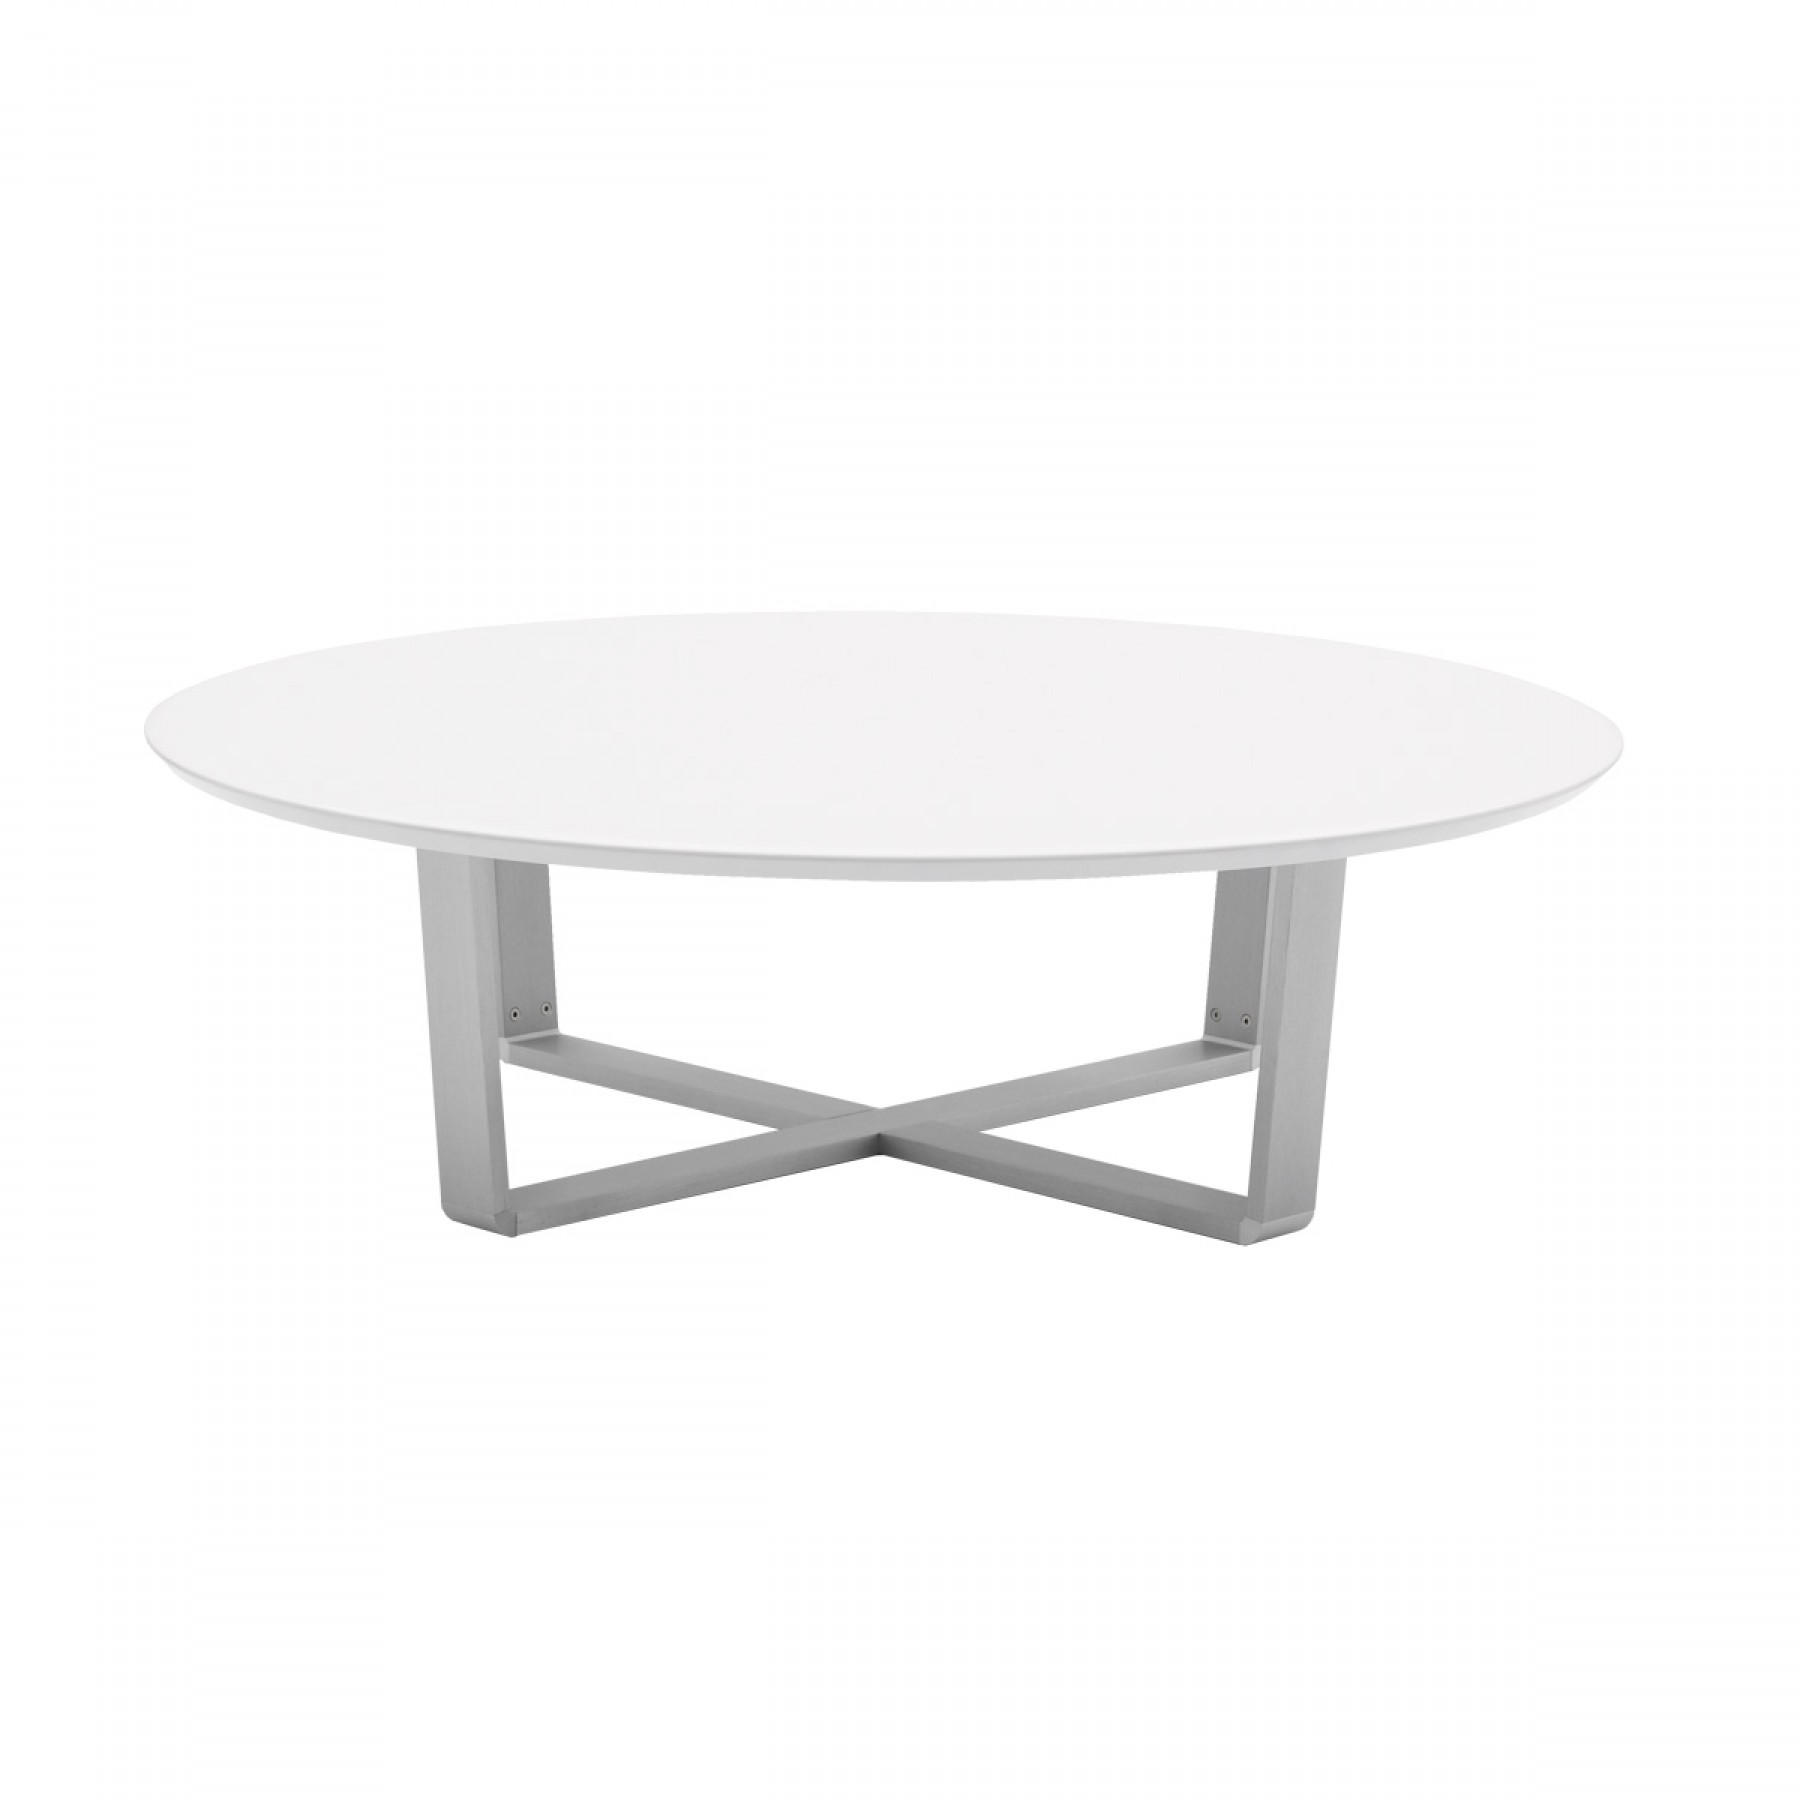 White Gloss Coffee Table Round Round Designs